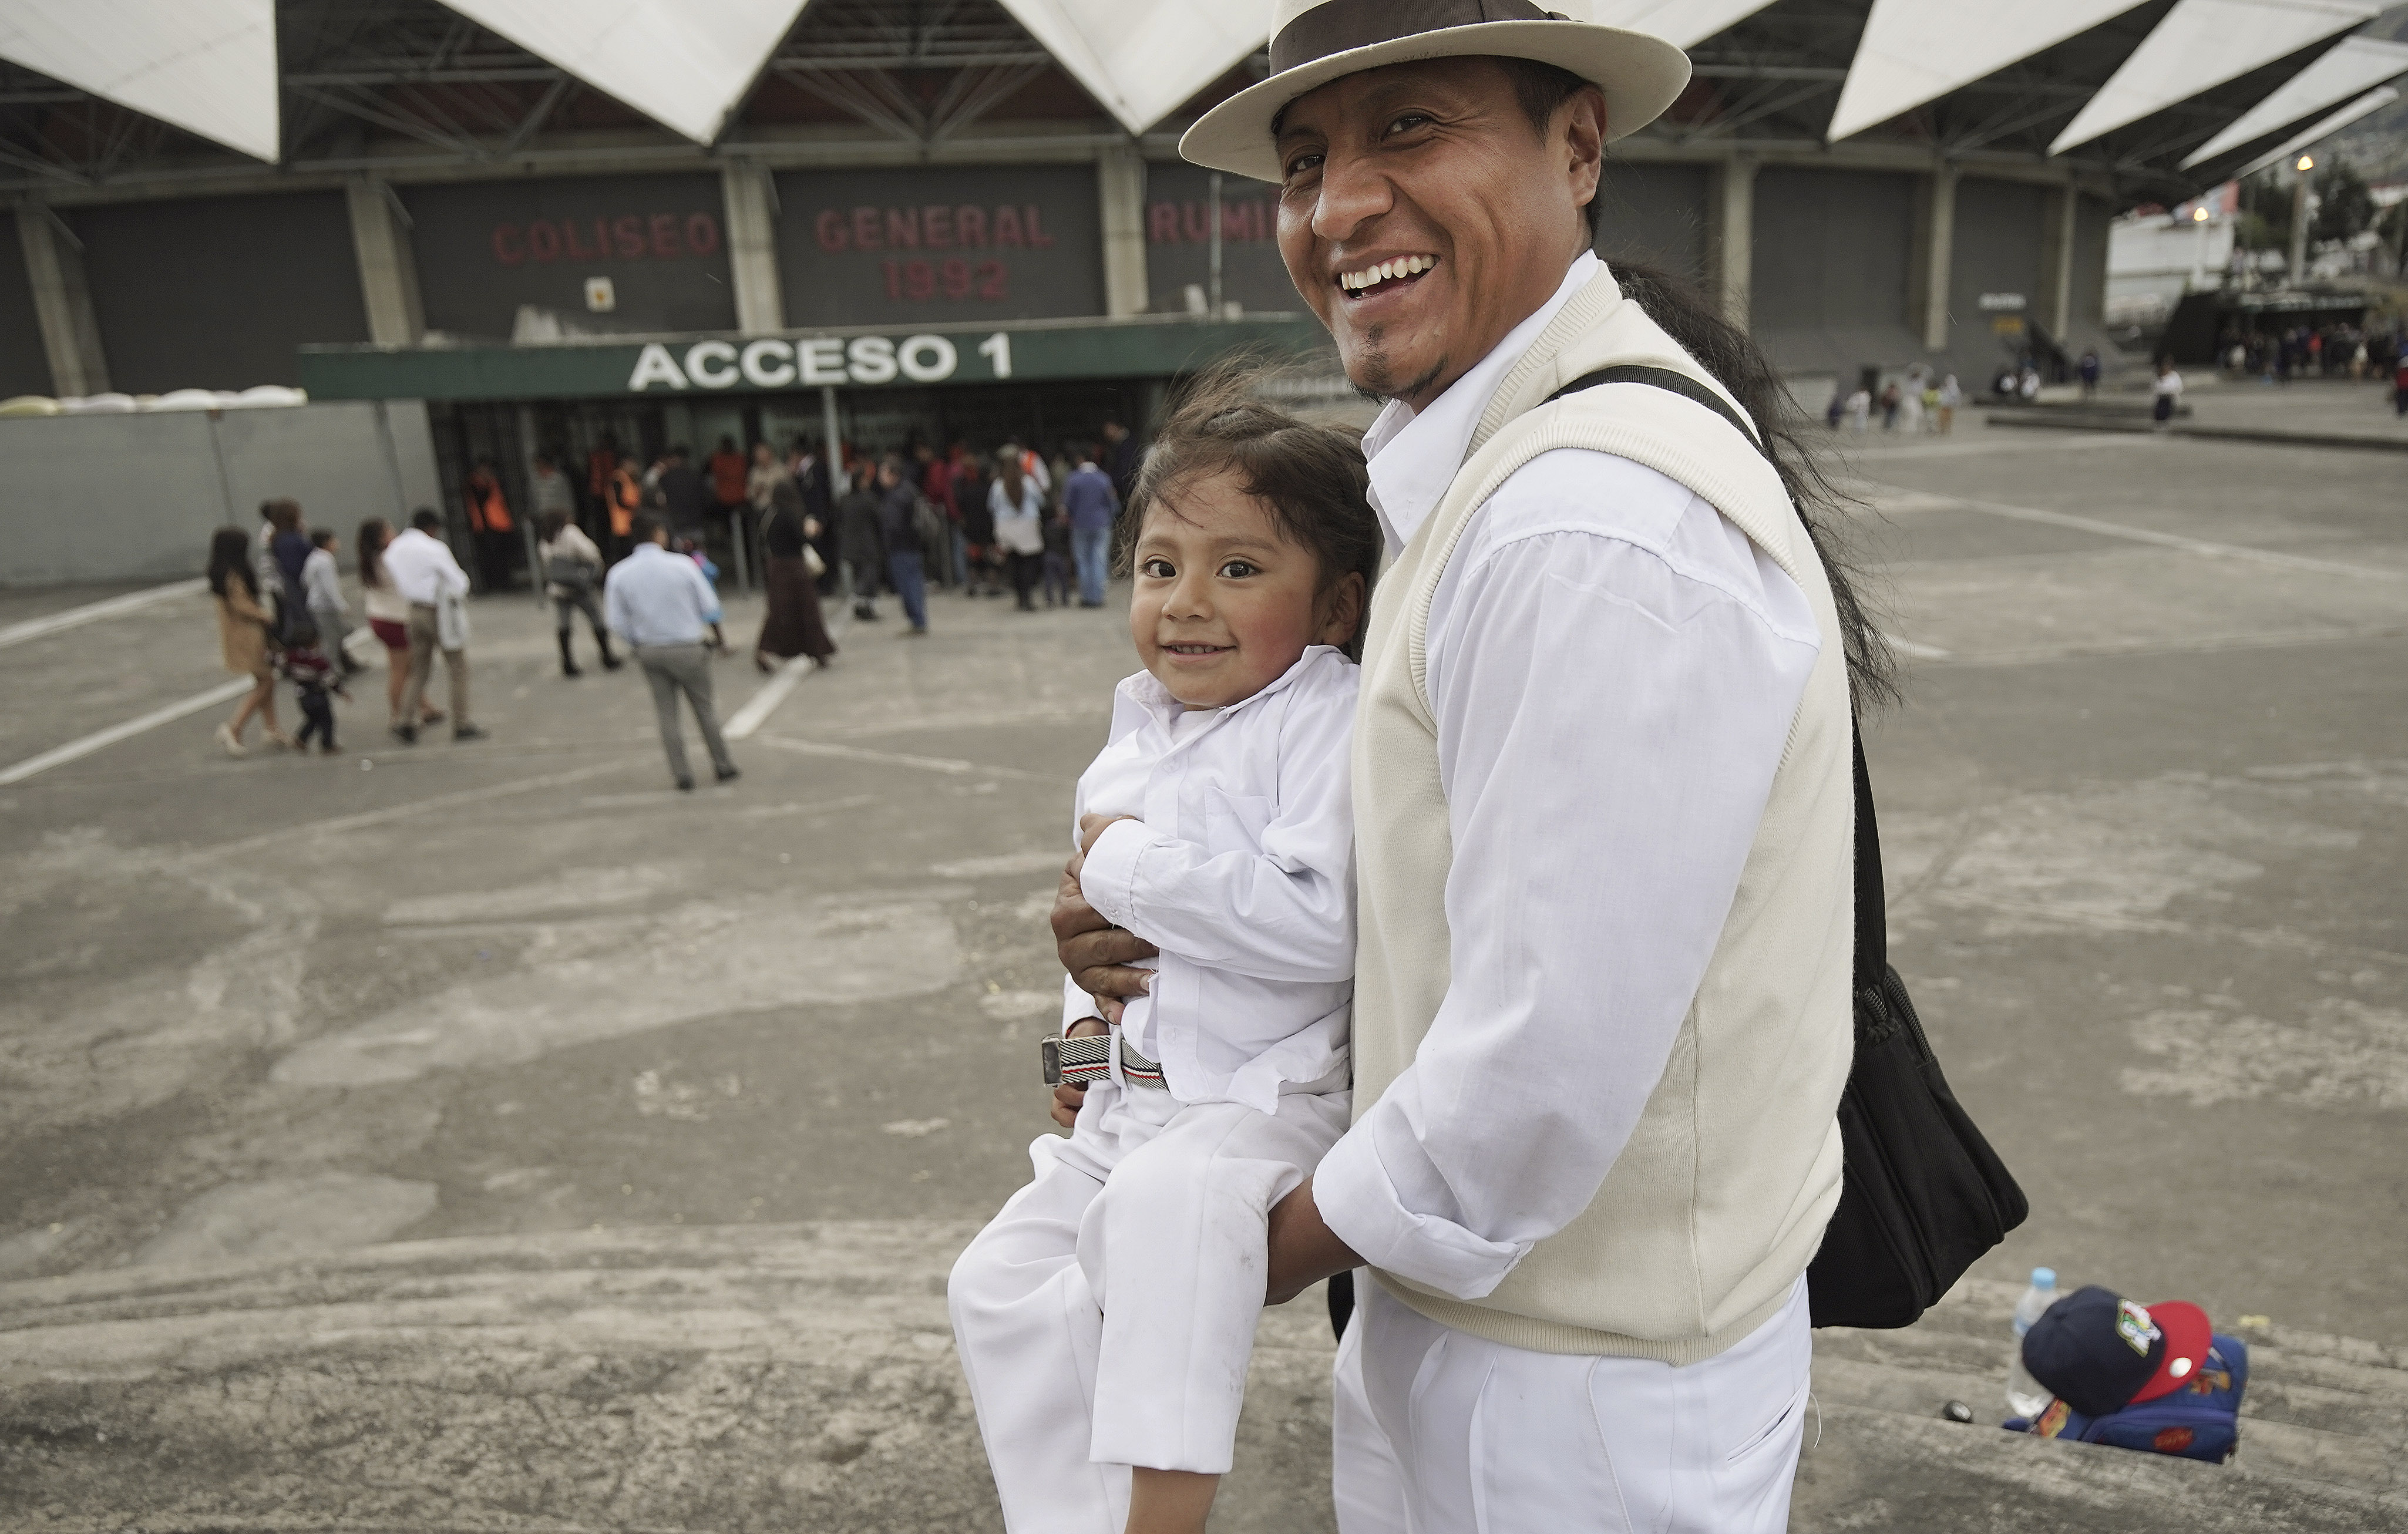 Luis Santa Cruz and his son Amir attend a devotional in Quito, Ecuador, on Monday, Aug. 26, 2019.